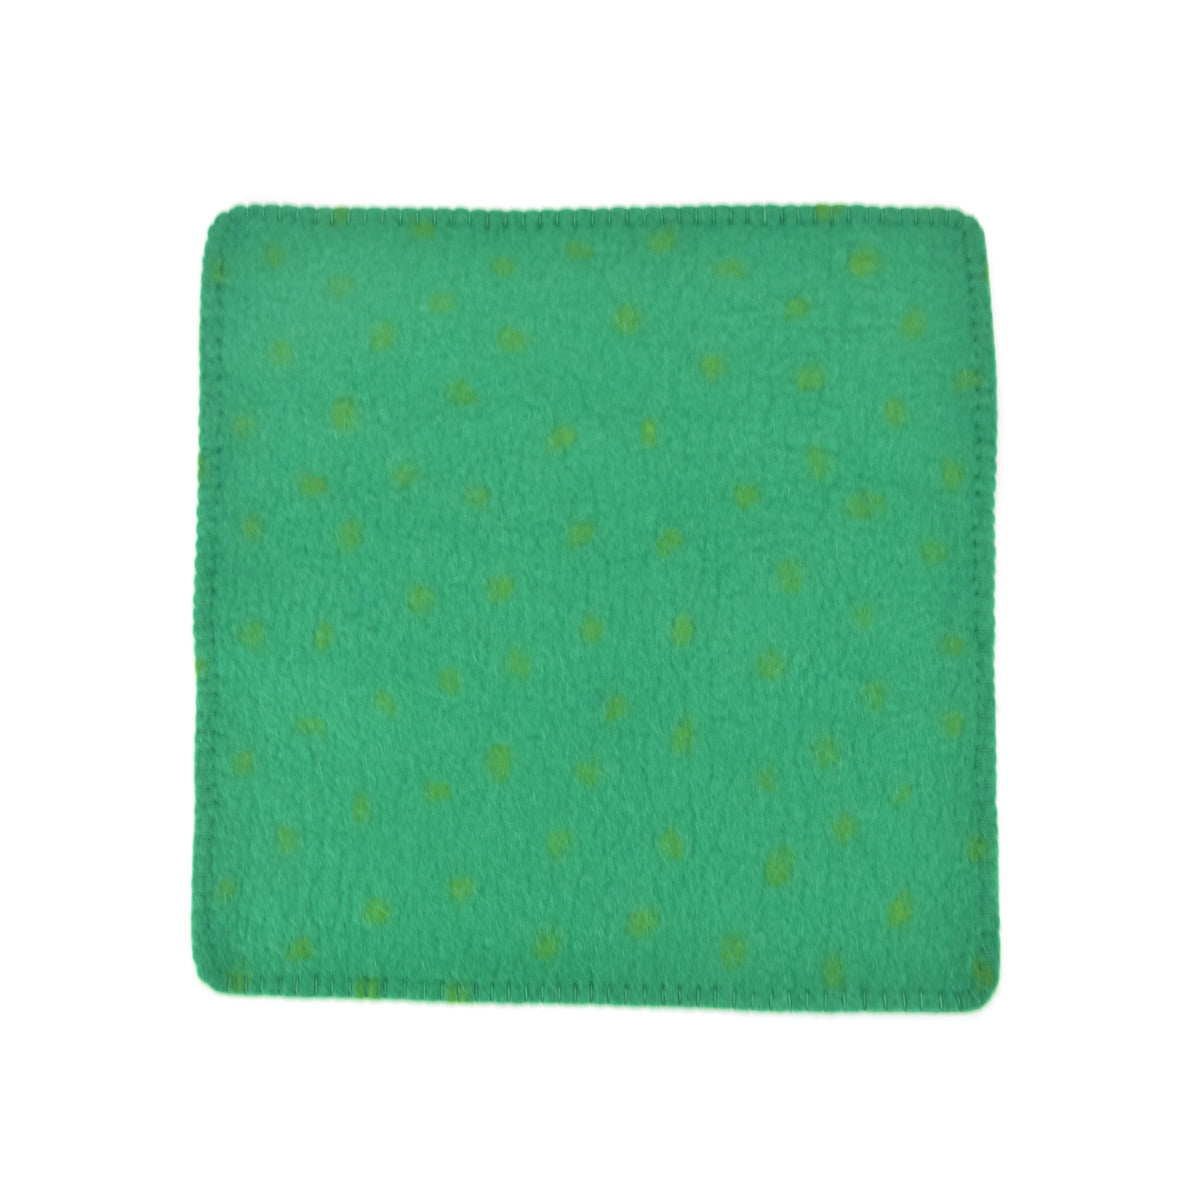 Hug Felted Polkadot Cushion Cover - Green